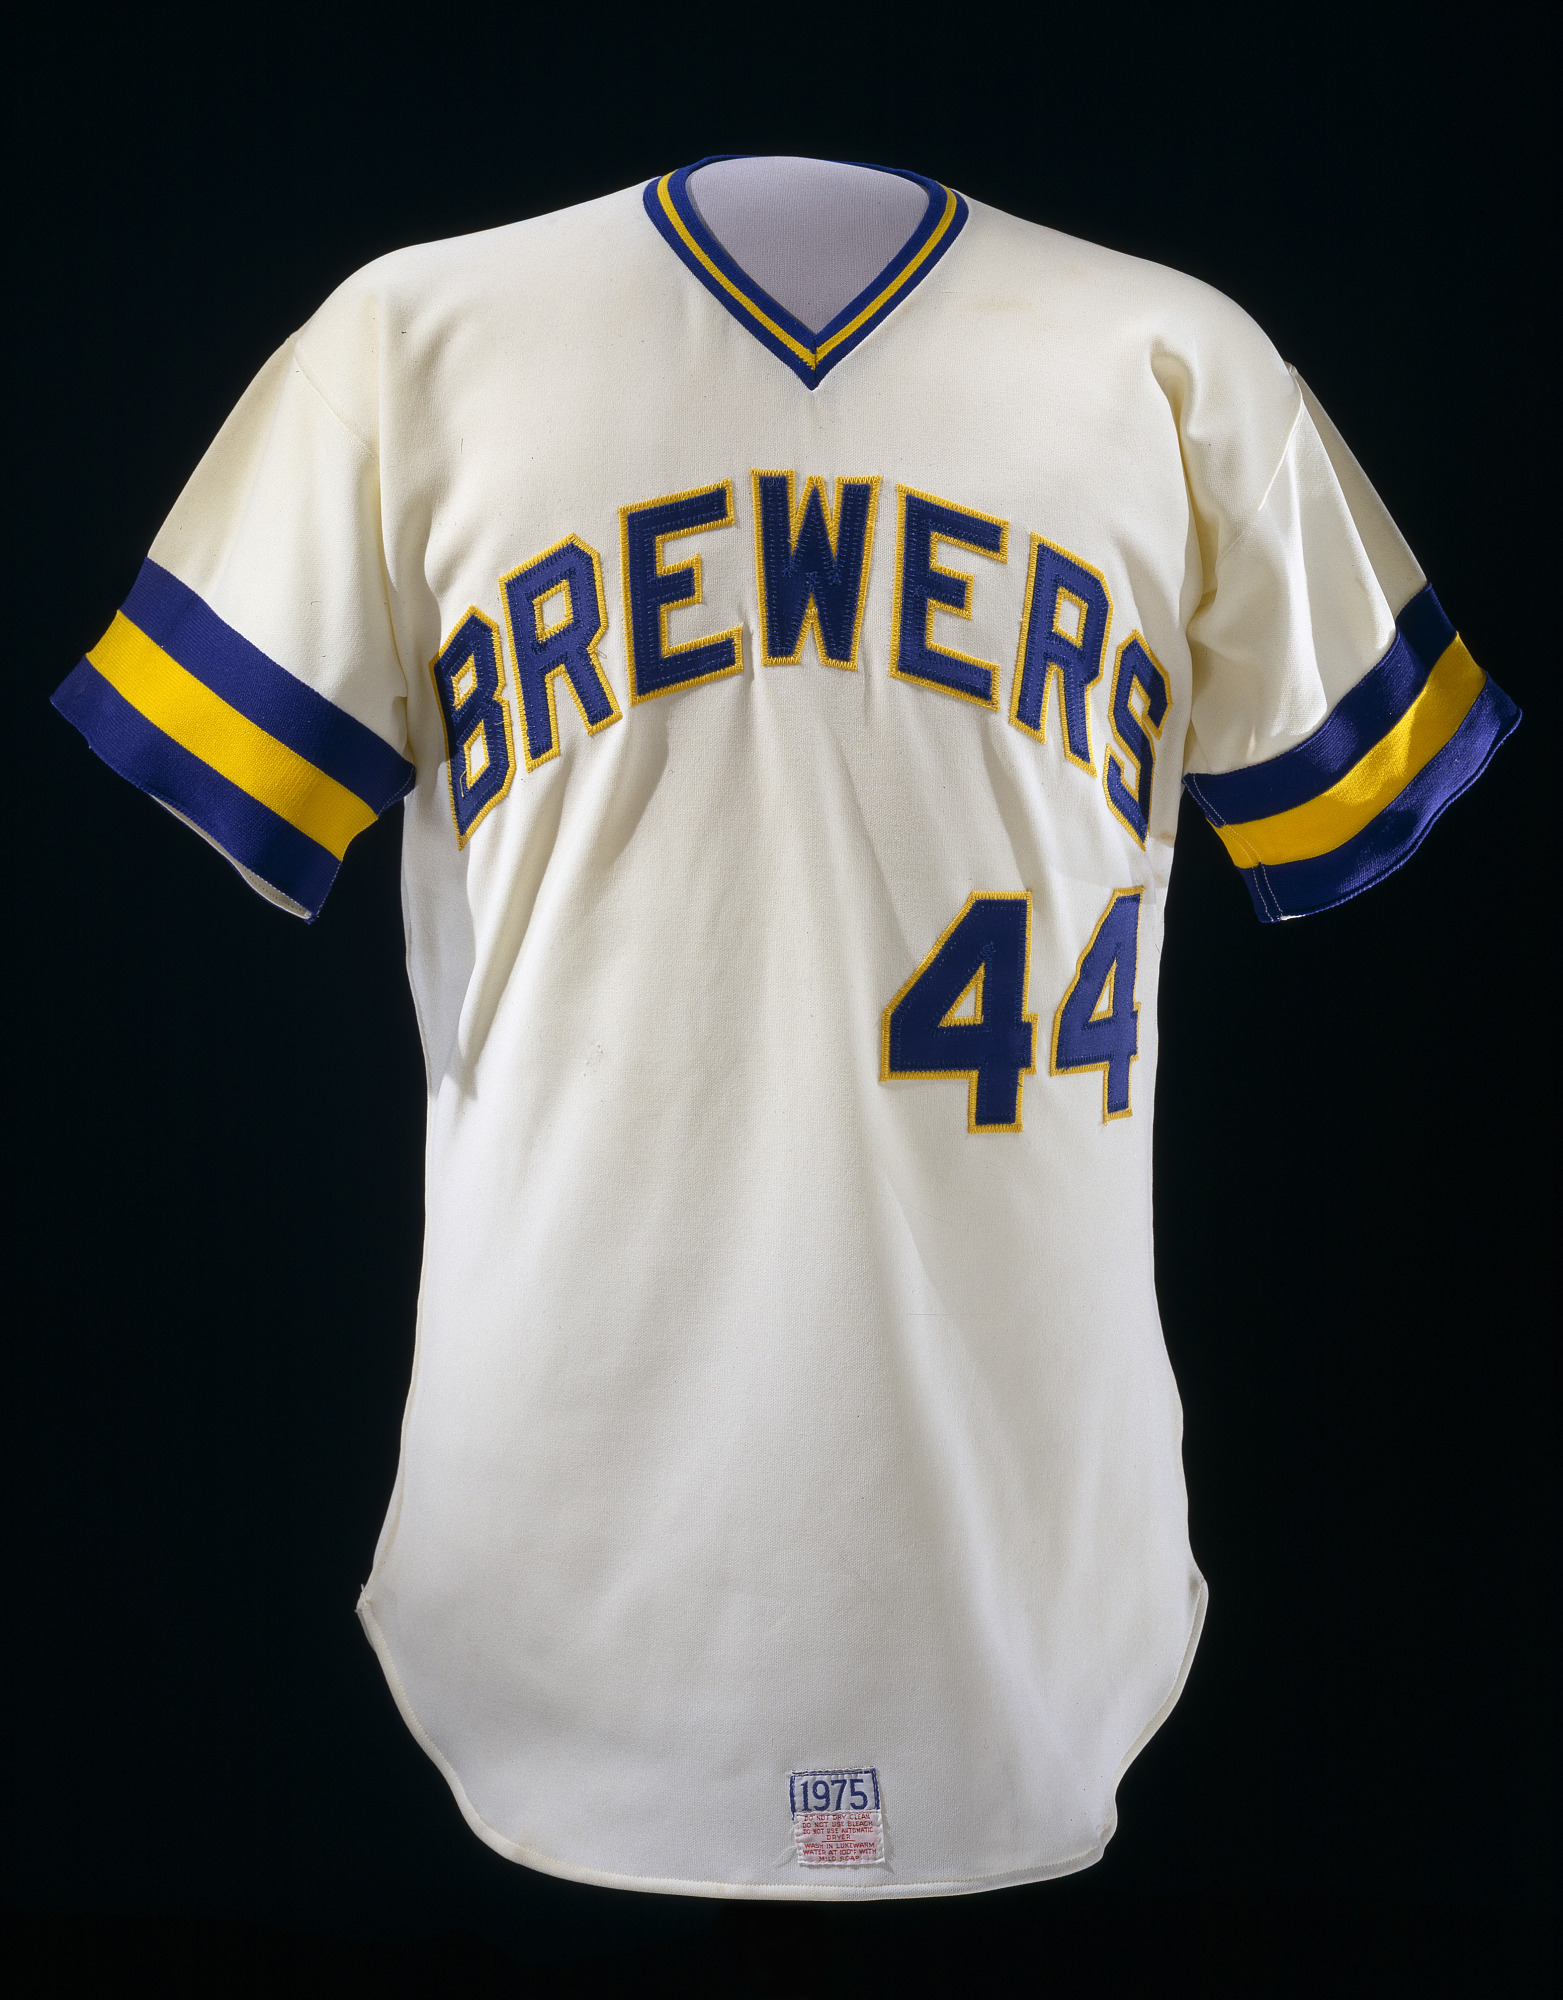 images for Milwaukee Brewers jersey, worn by Hank Aaron